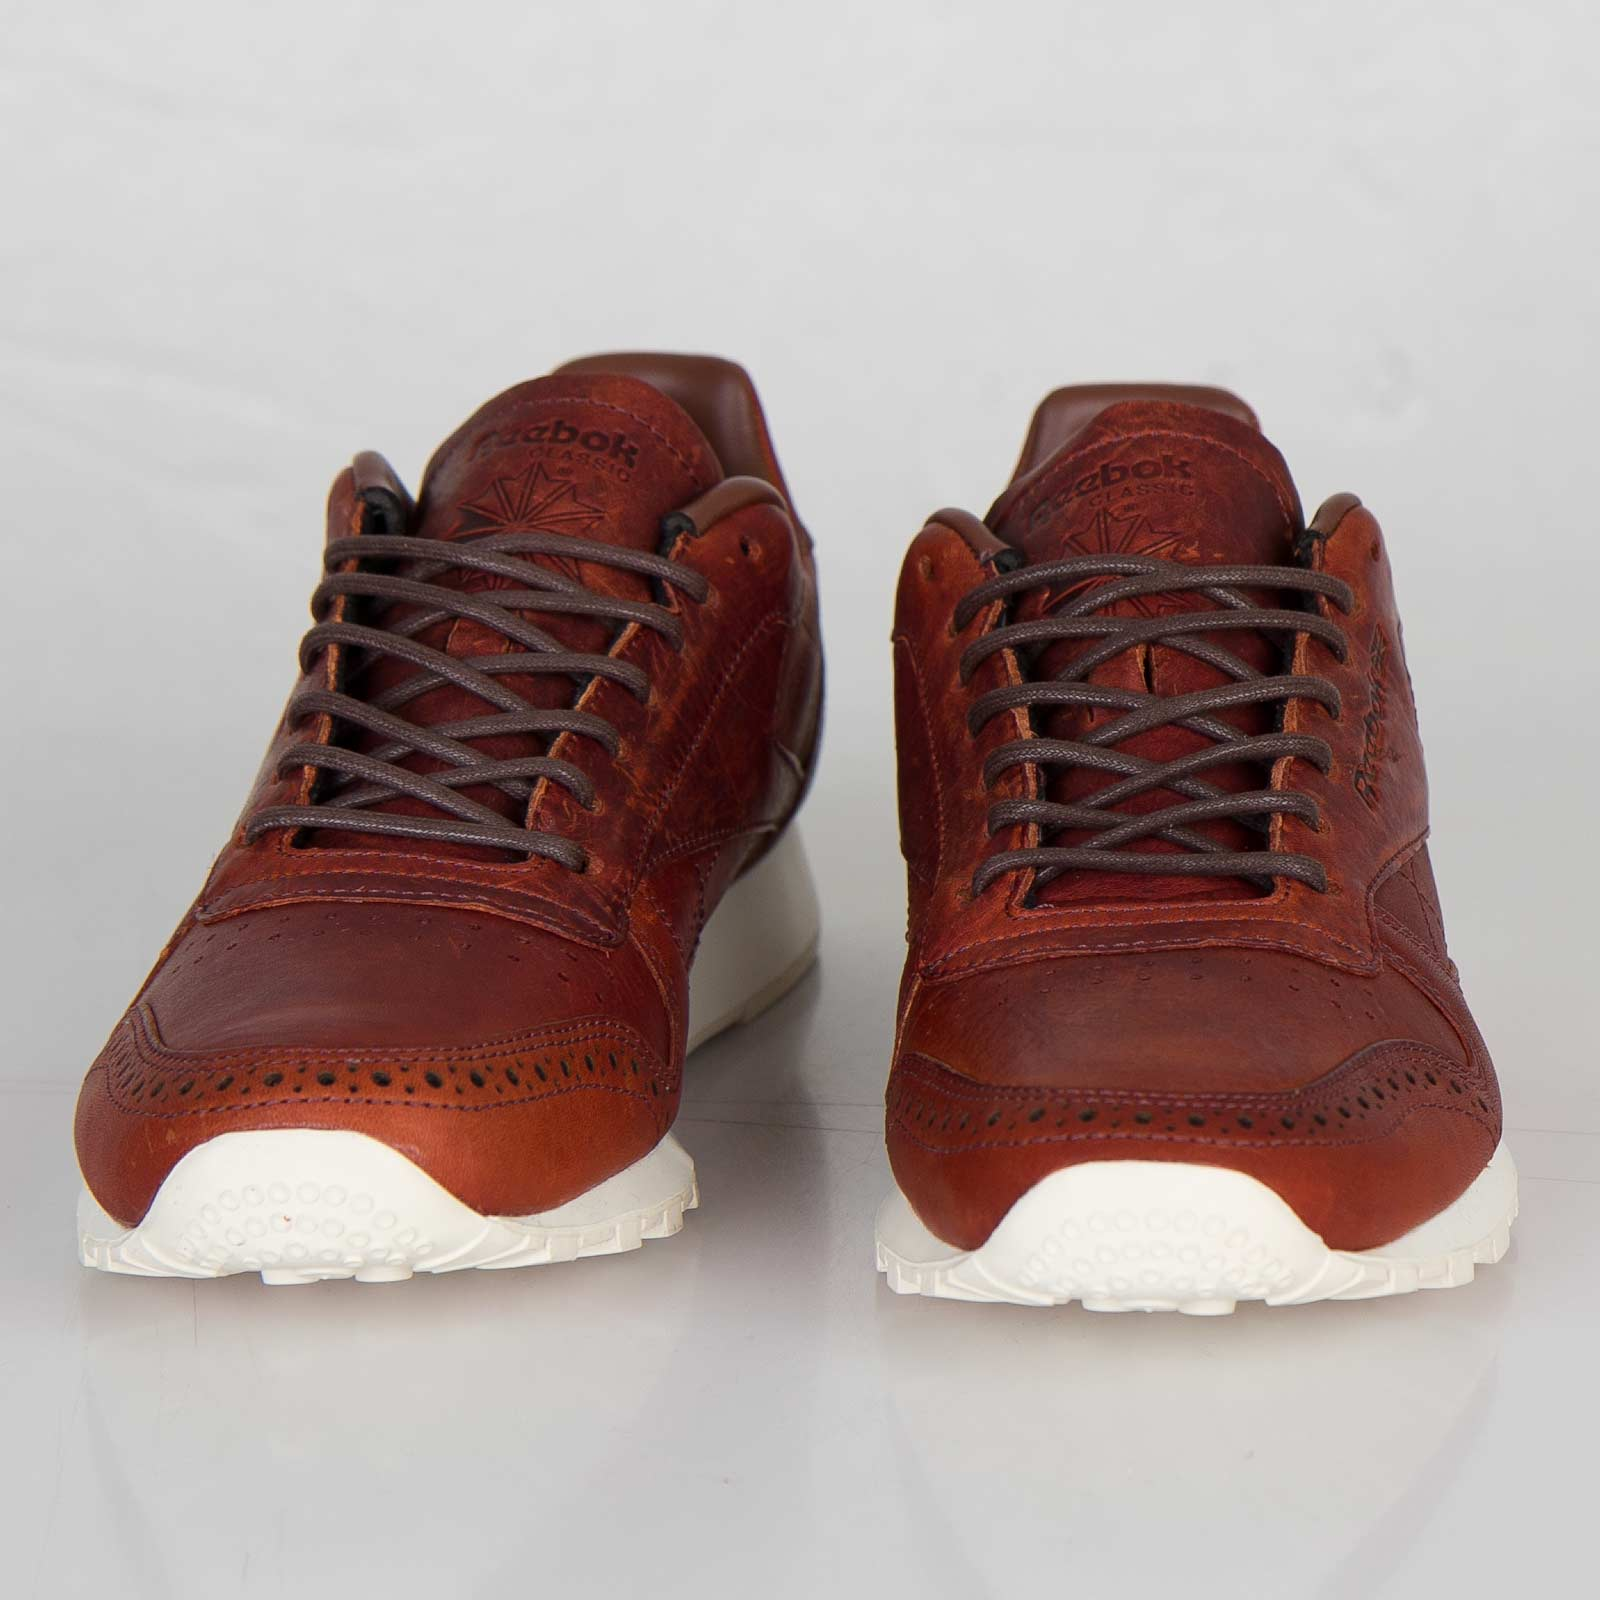 4efeea9eb3341 Reebok Classic Leather Lux CF Stead - V55142 - Sneakersnstuff ...